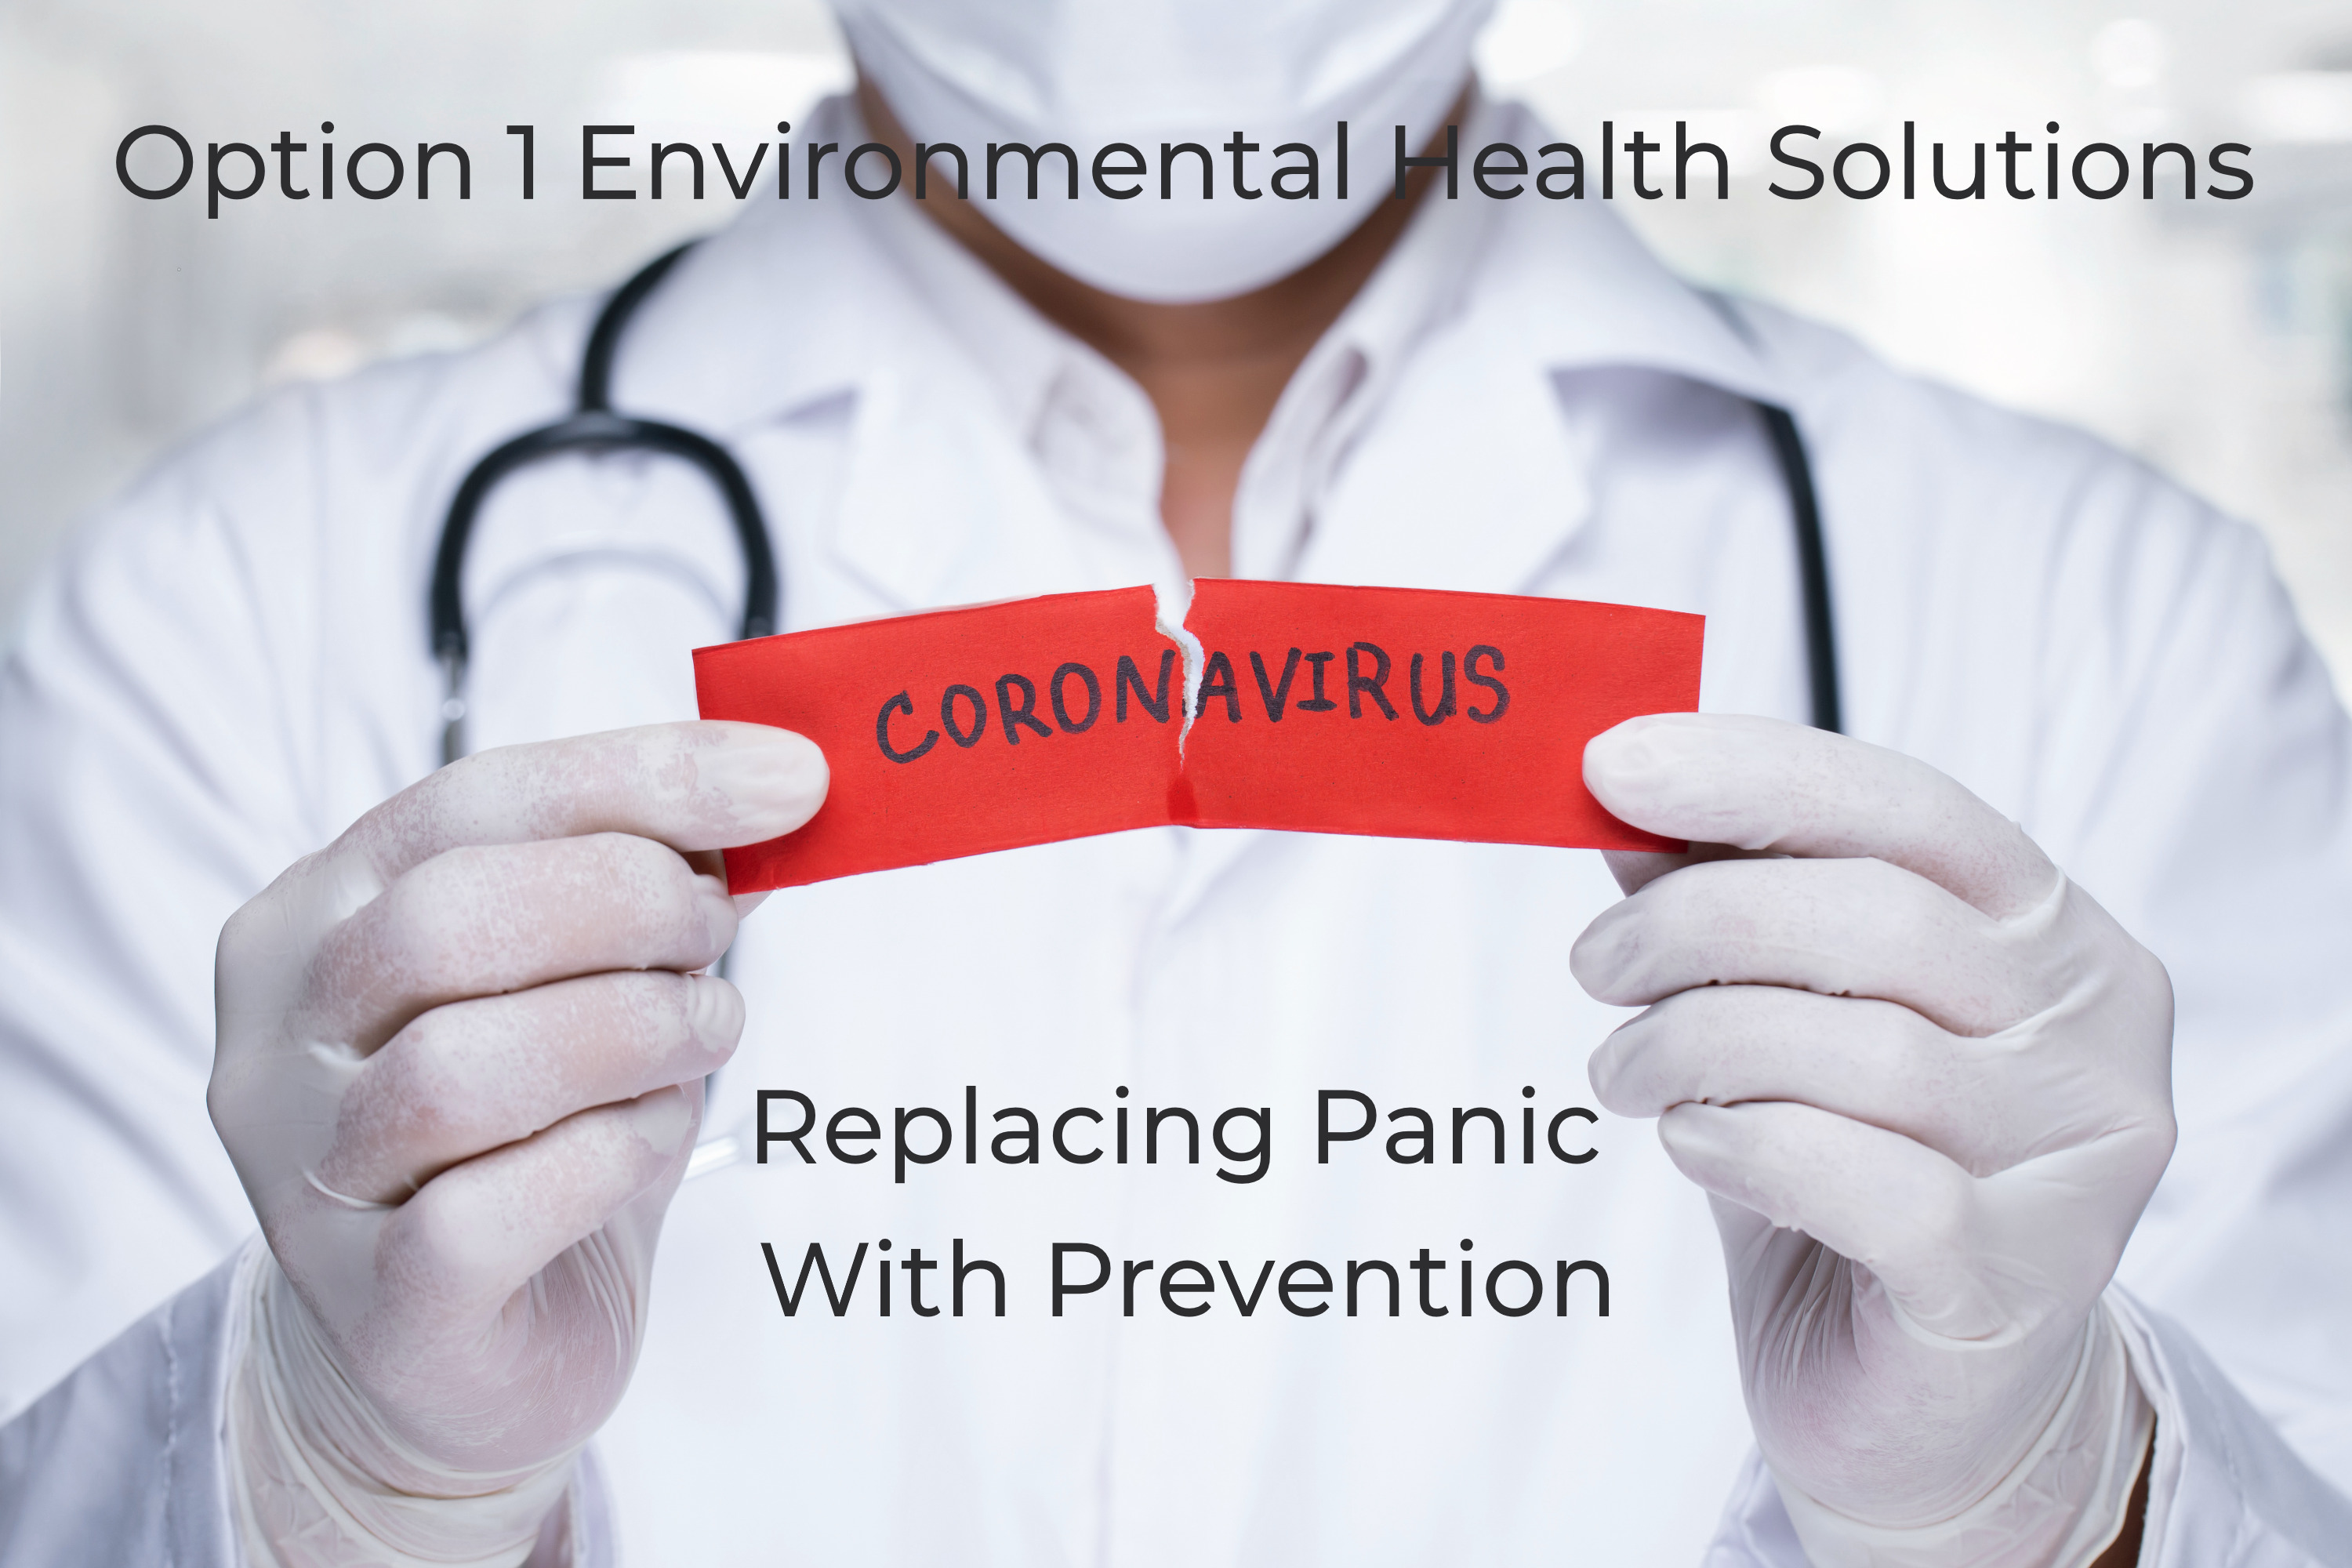 Option 1 Environmental Health Solutions